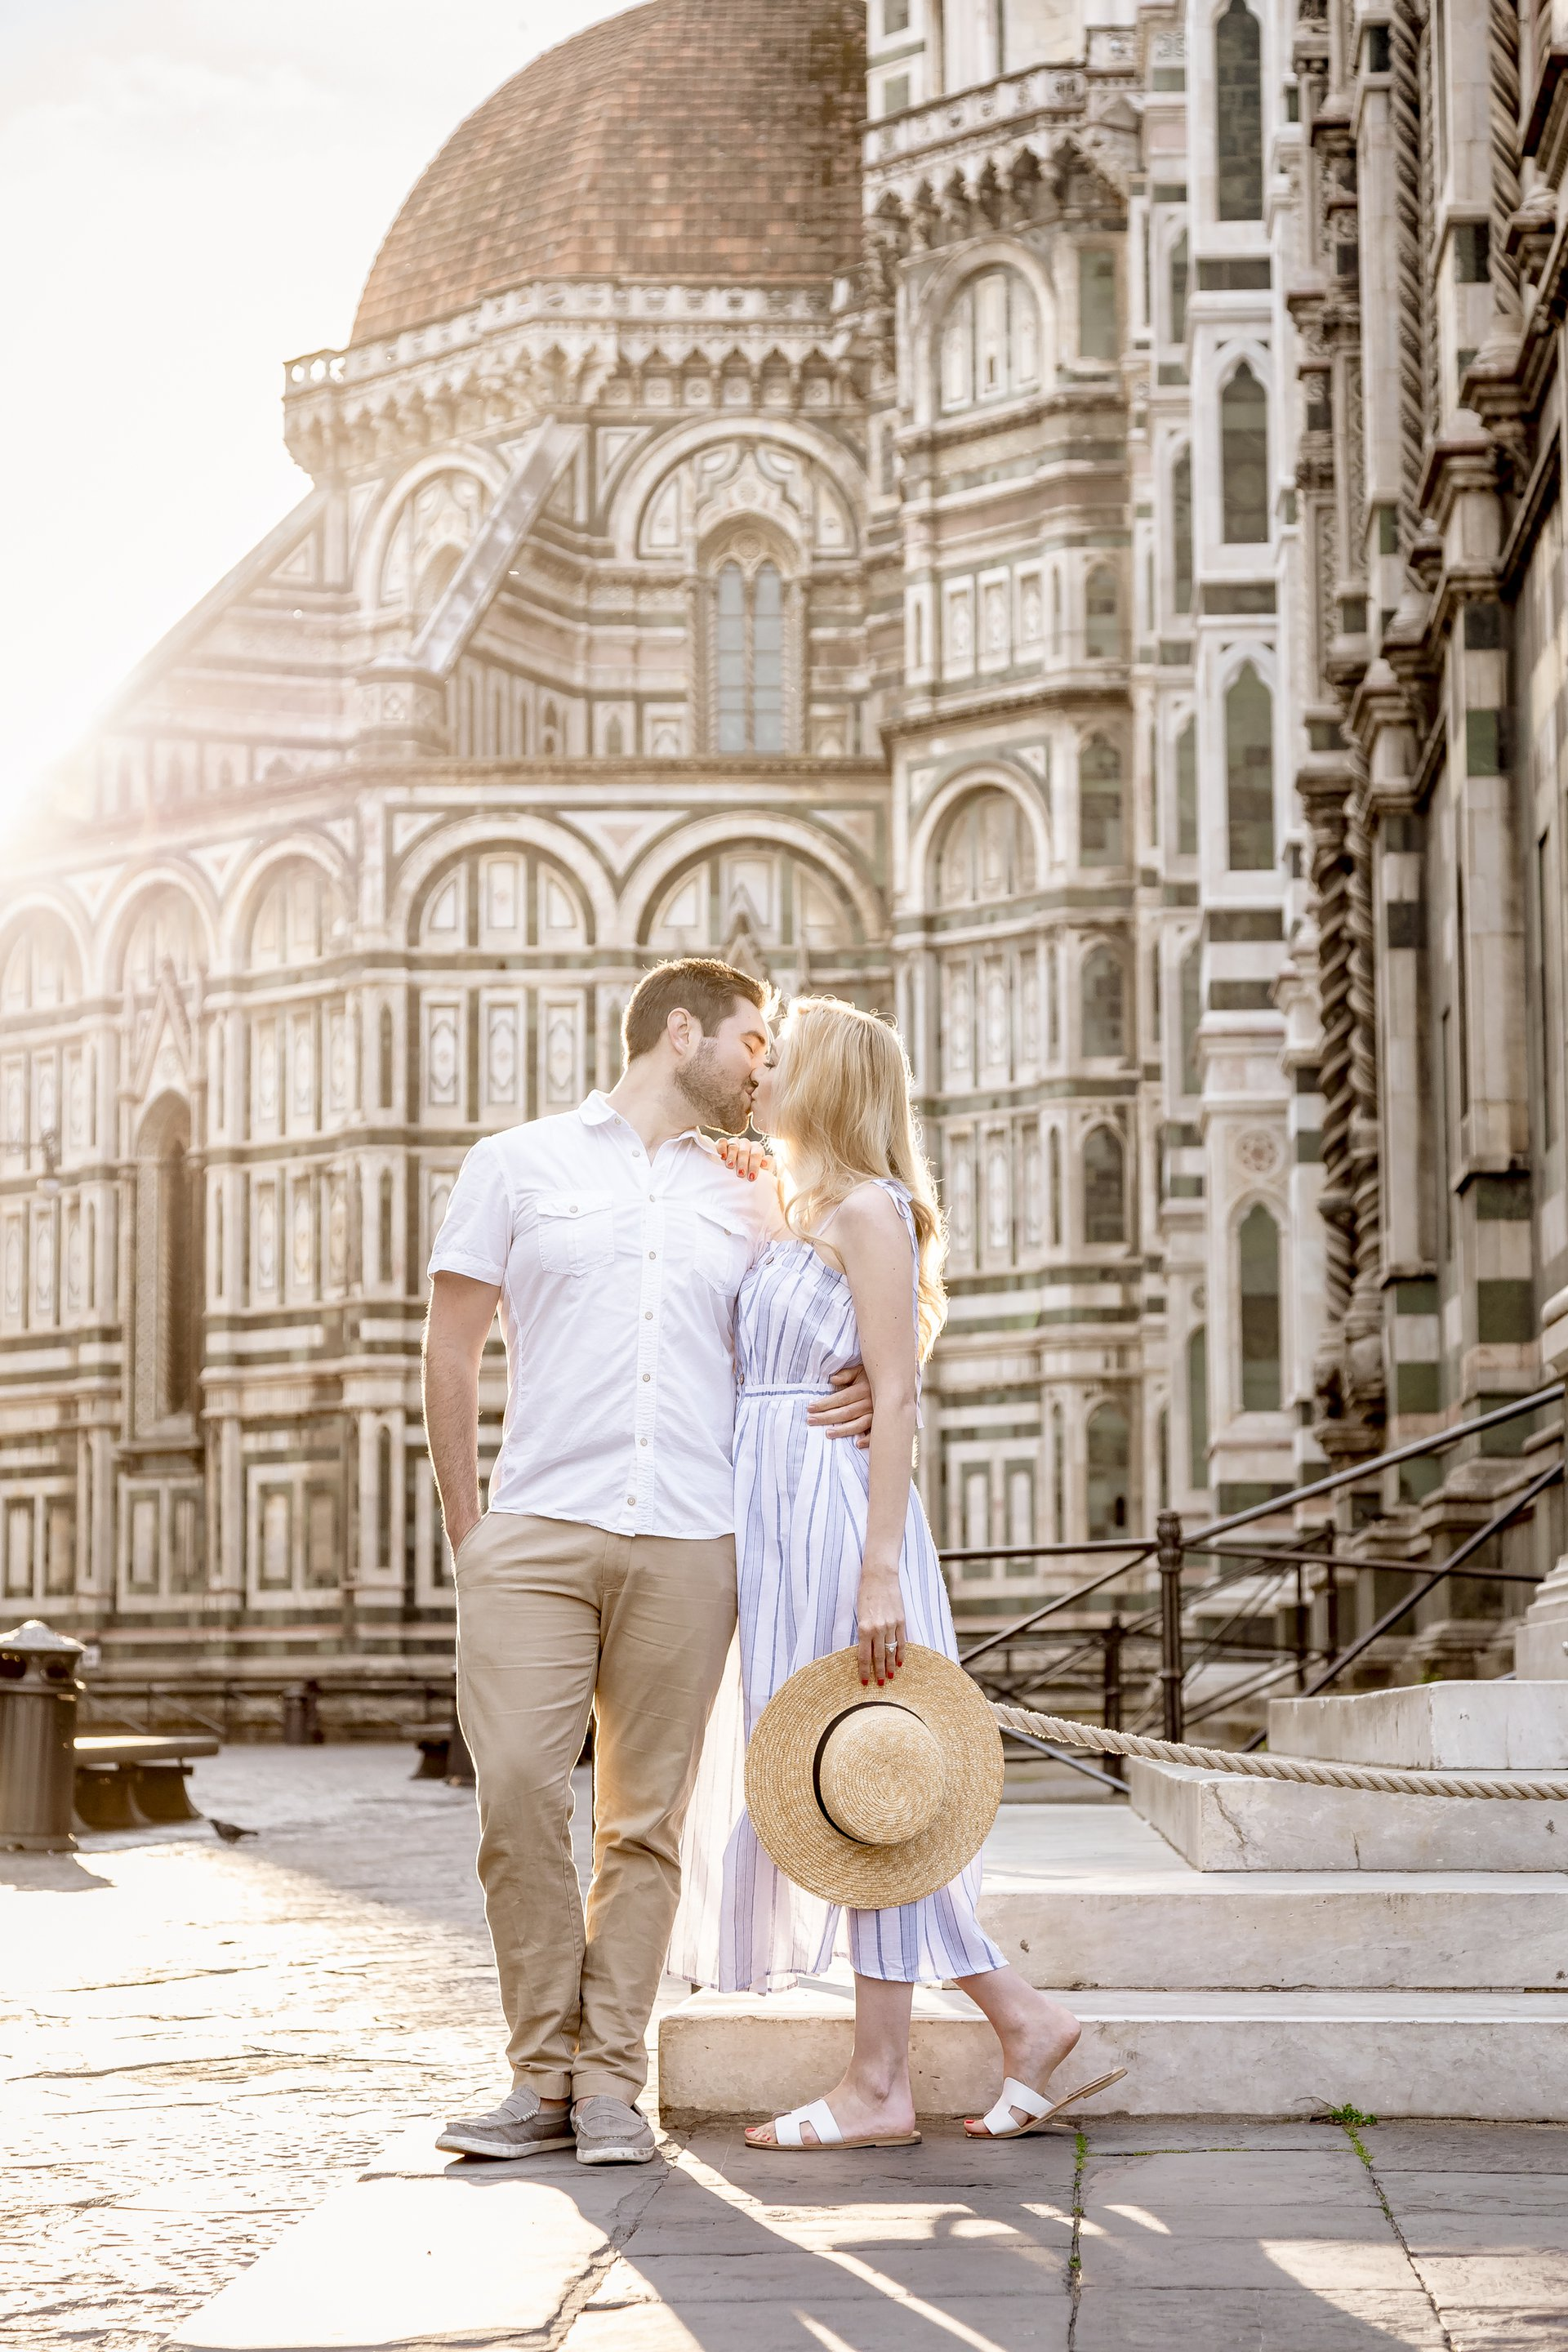 Florence-Italy-travel-story-Flytographer-12